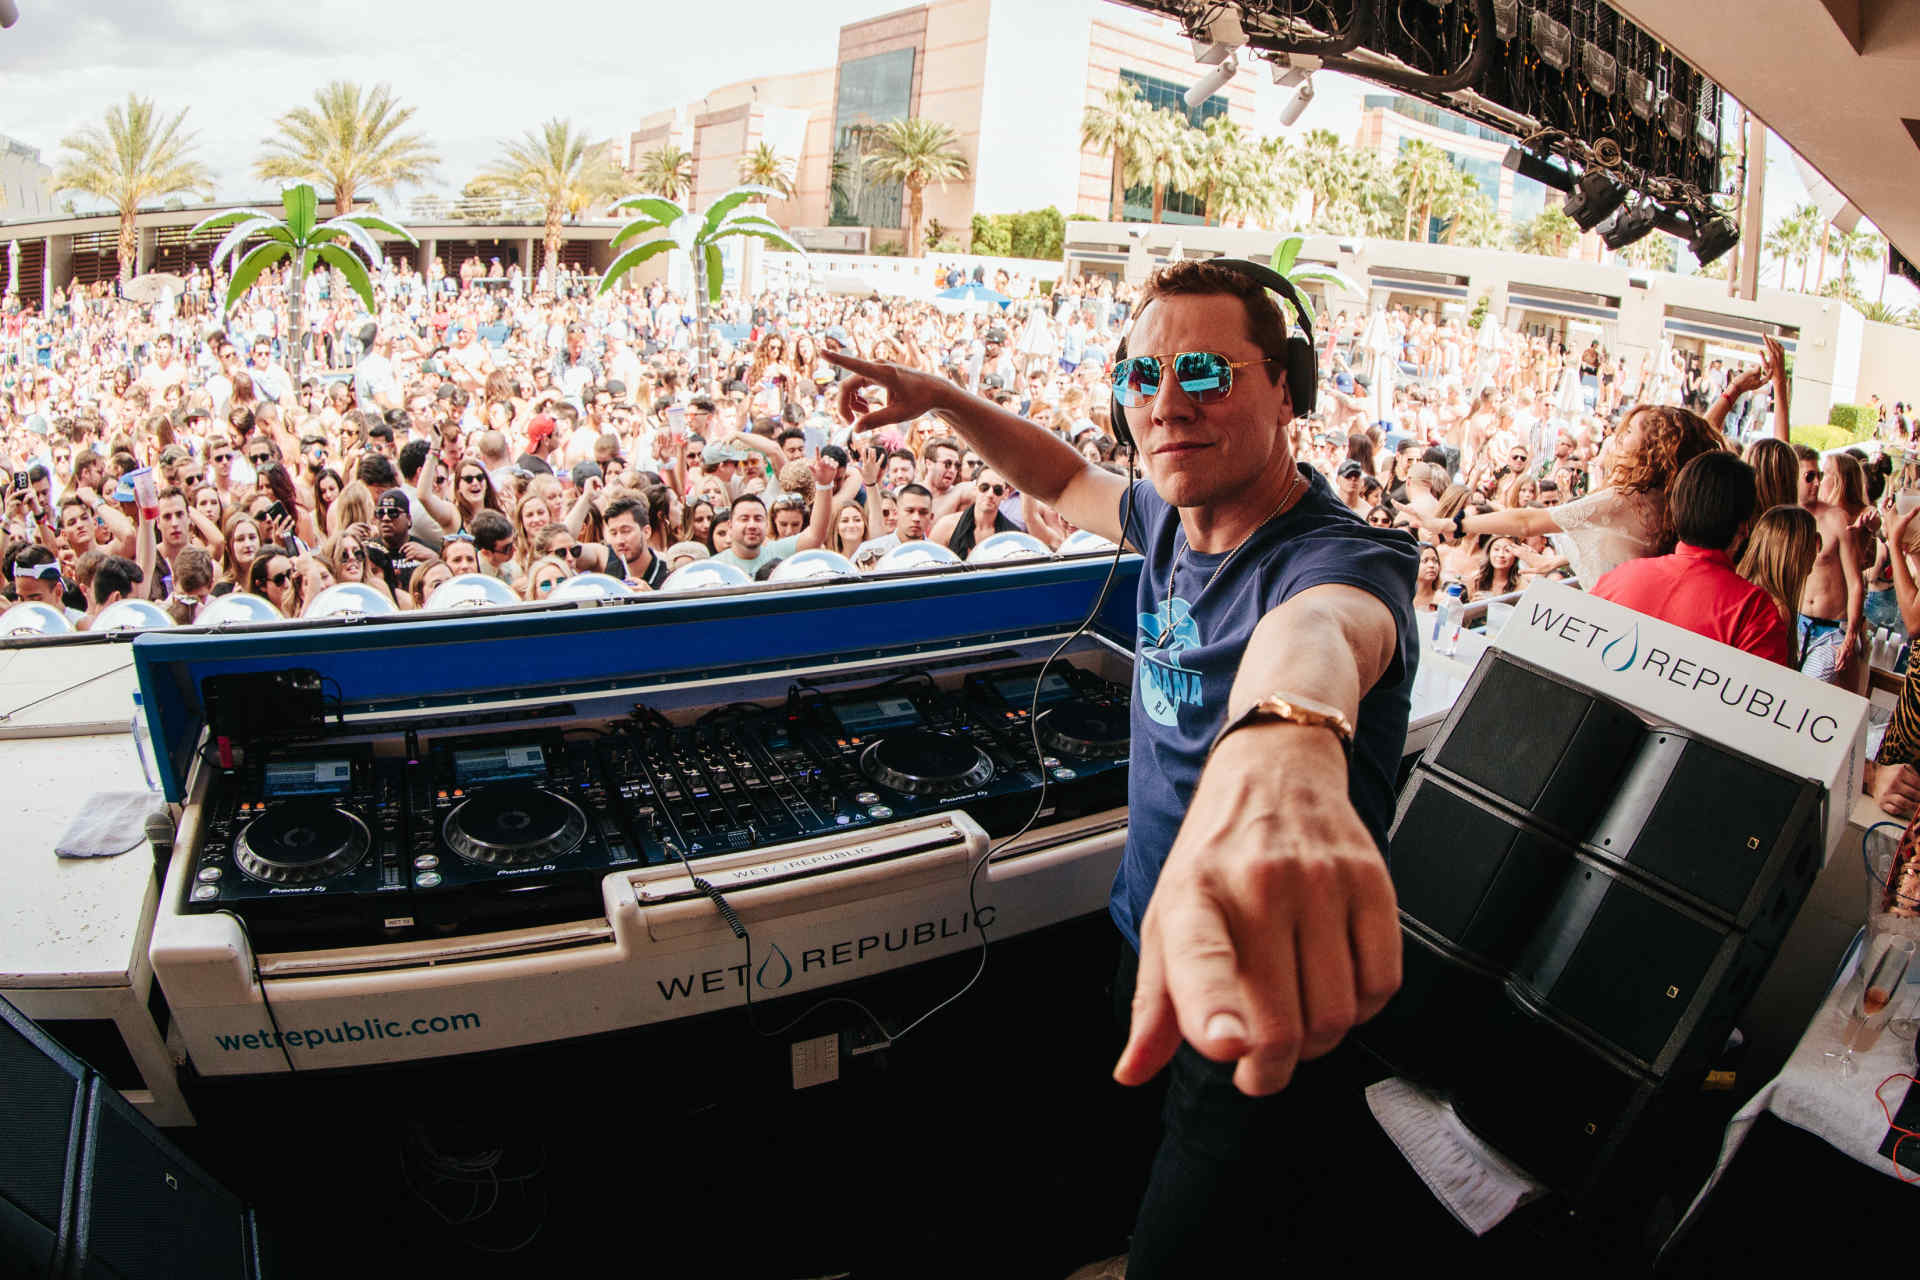 Tiësto goes back-to-back on the remix end with an edit of Joel Corry, MNEK's 'Head & Heart'Tiesto